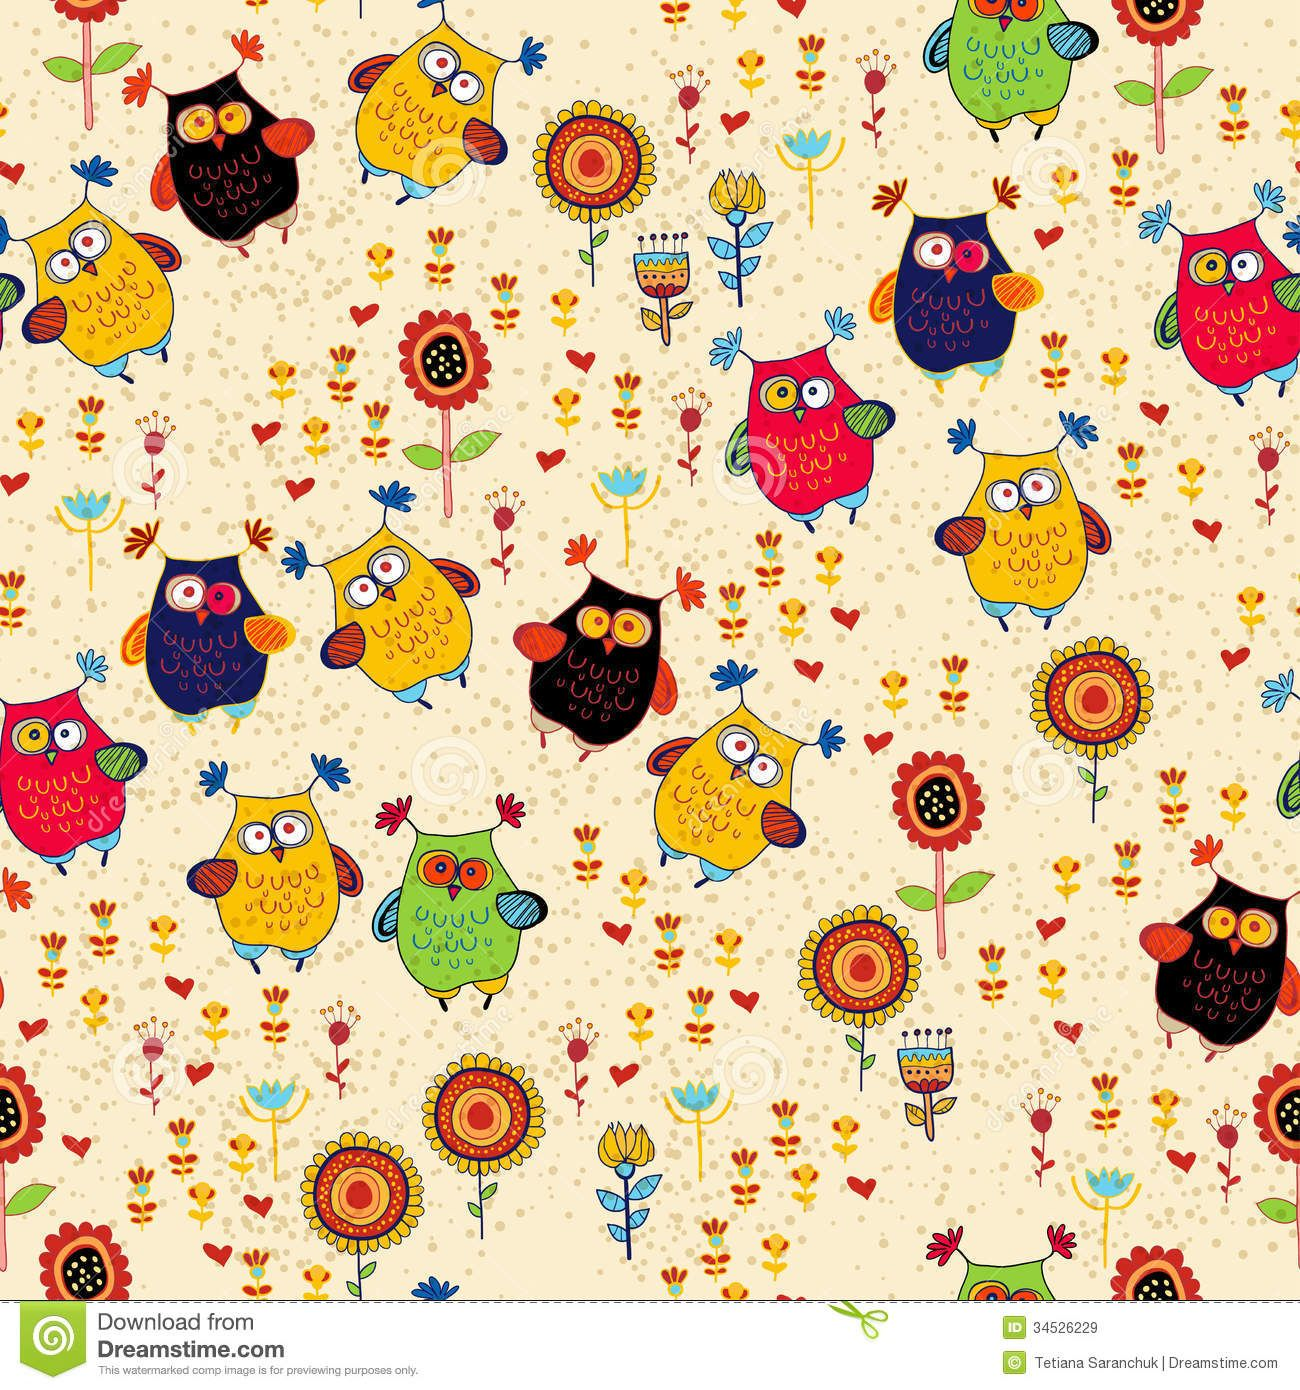 Free Owl Wallpapers: Colourful Circle Patterns - Google Search